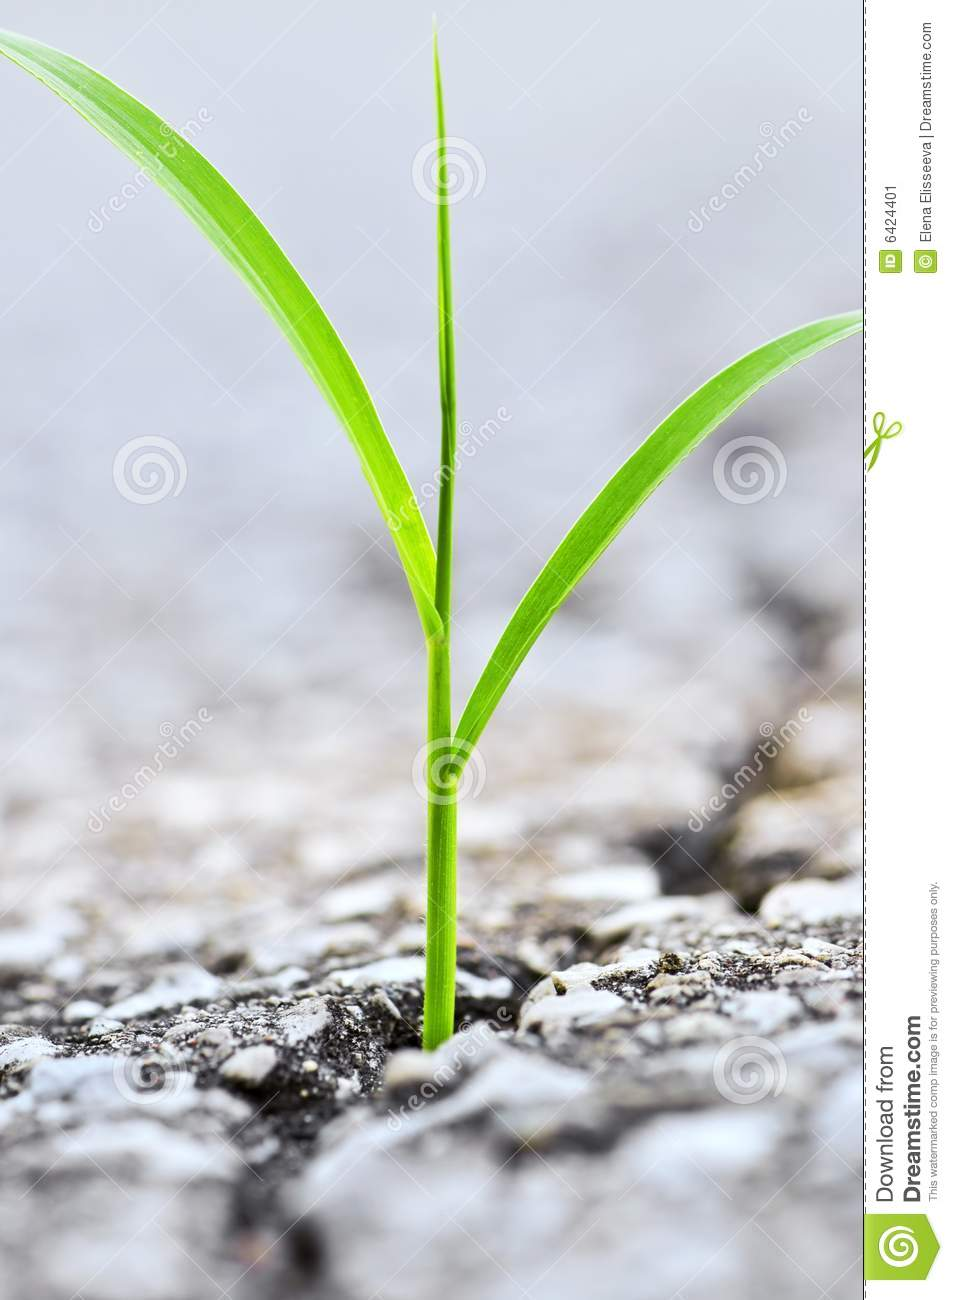 Grass growing from crack in asphalt